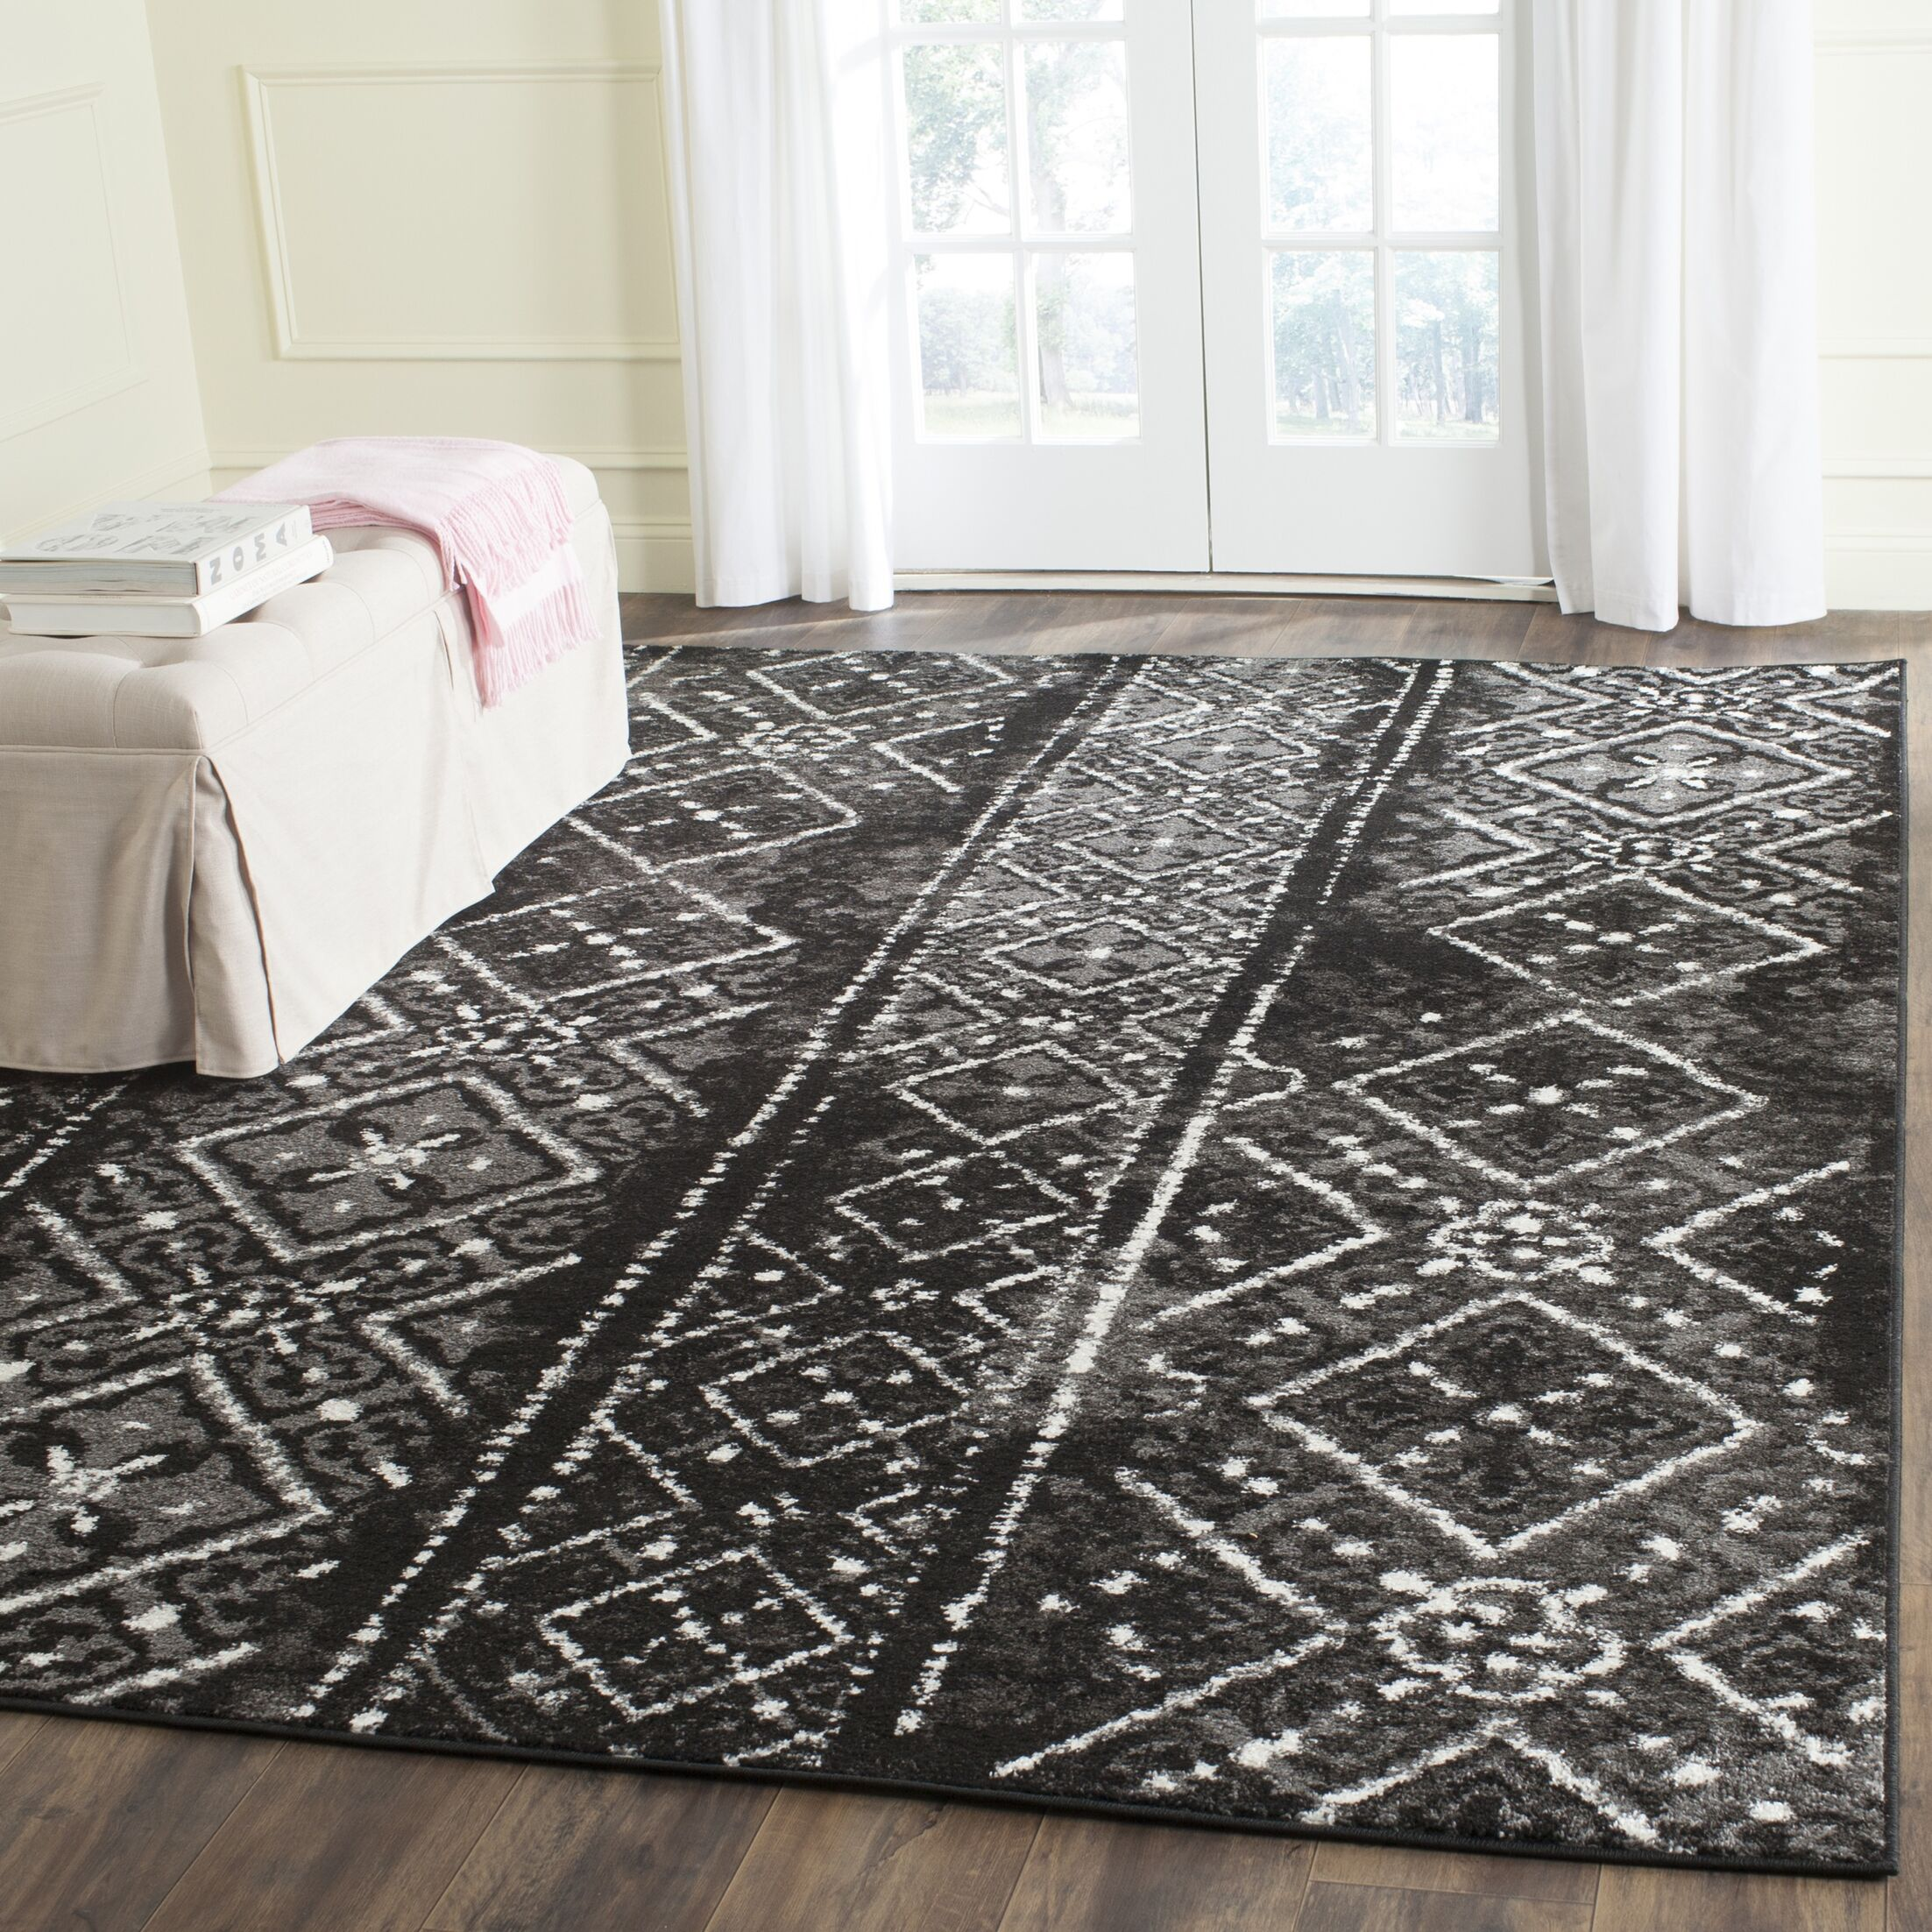 Area Rugs Norwell Blacksilver Area Rug June 2019